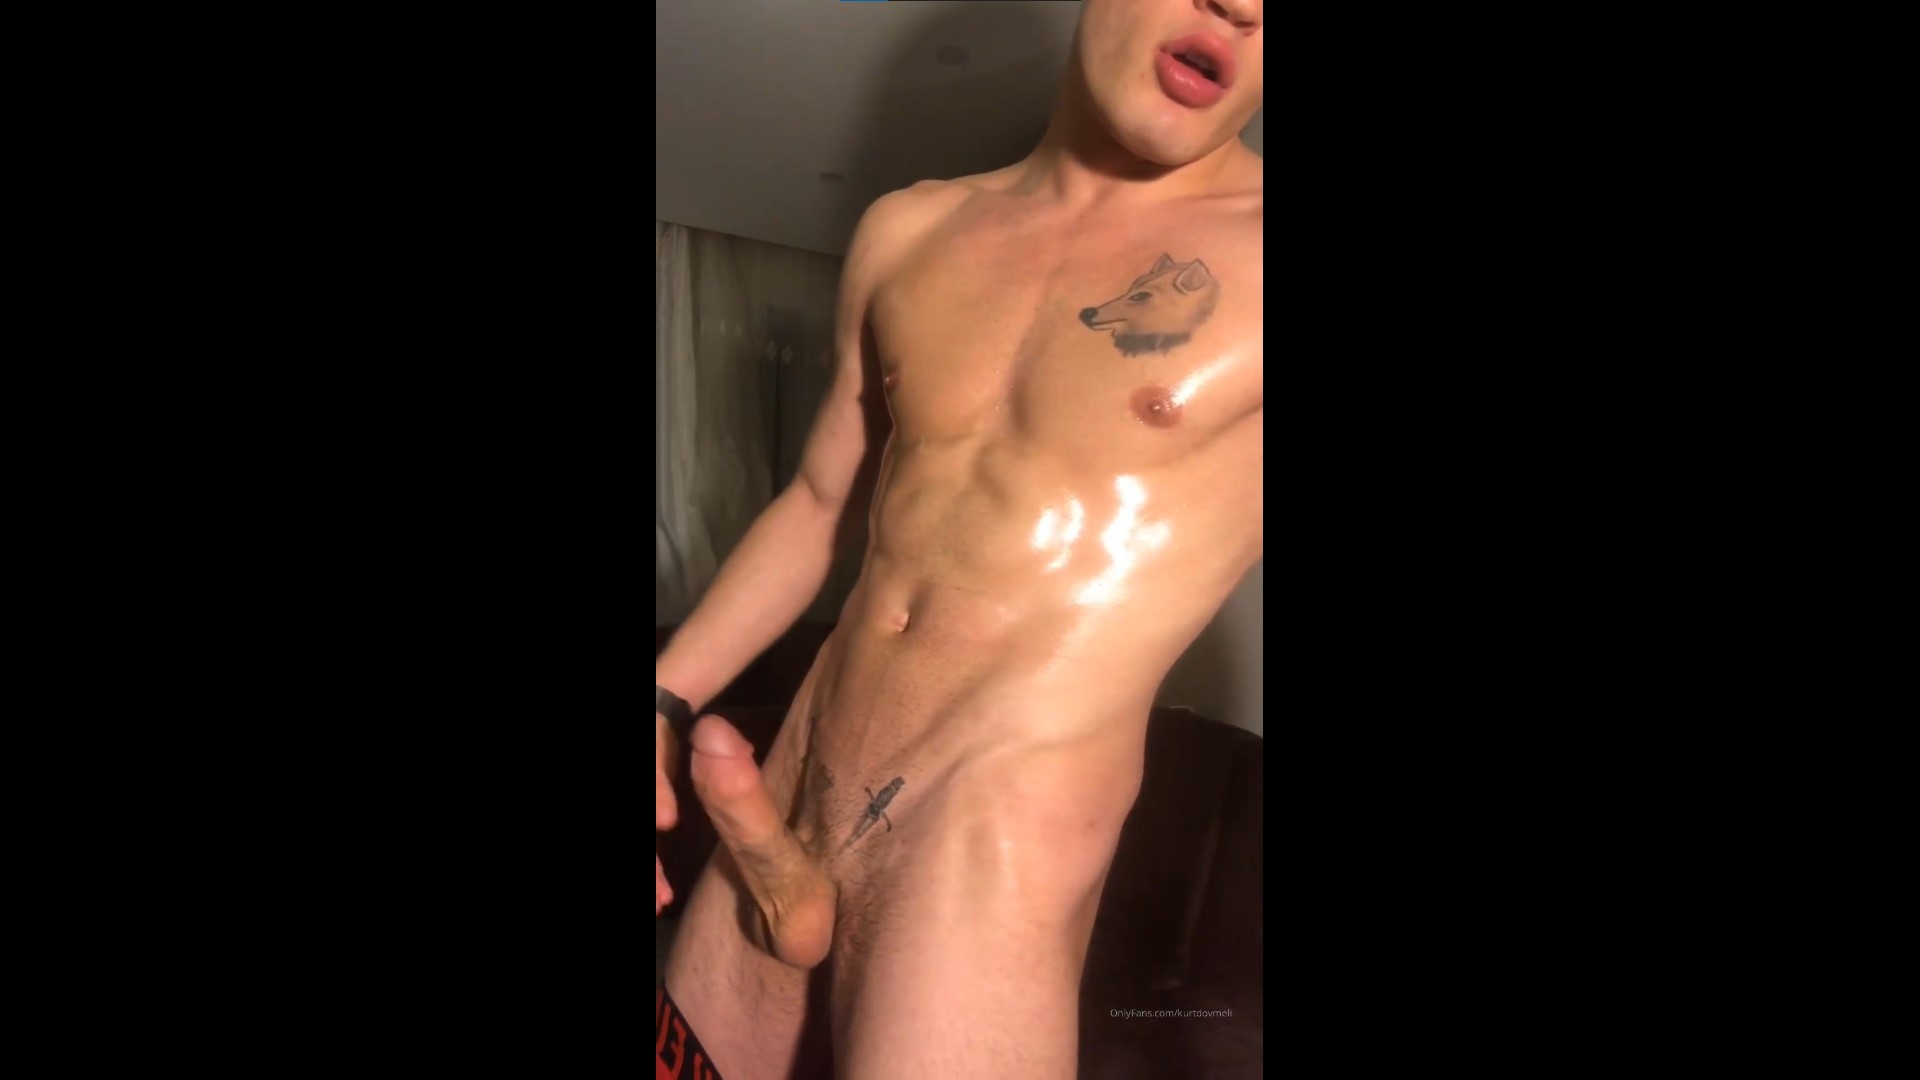 Watching porn and cumming over my oiled up body - Kurtdövmeli